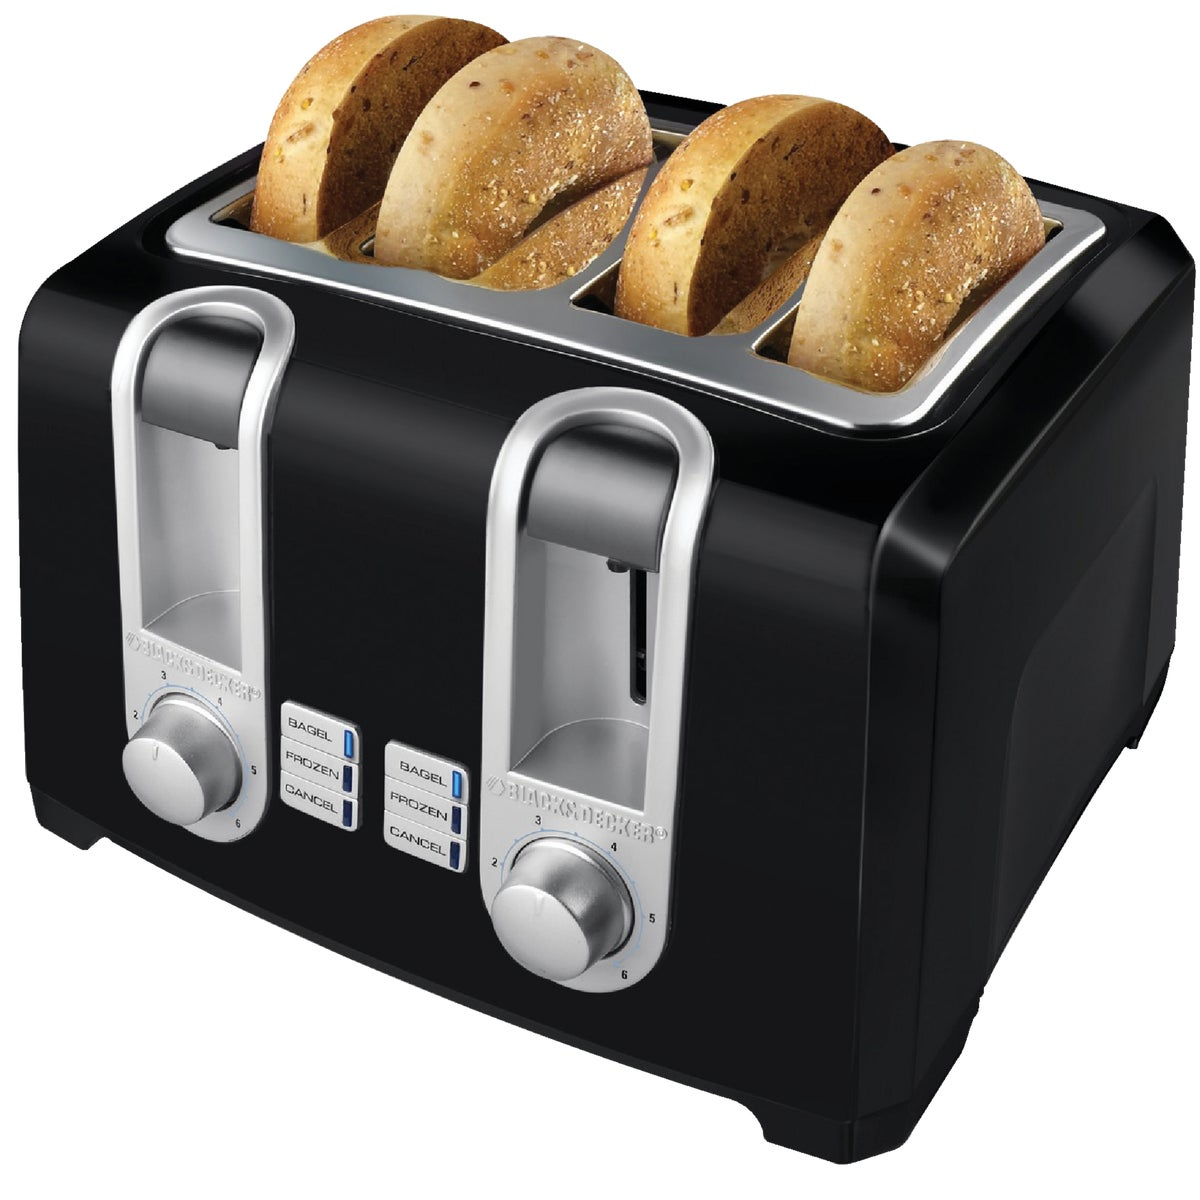 4-SLICE BLK/CHRM TOASTER - T4569B by Applia      Spectrum